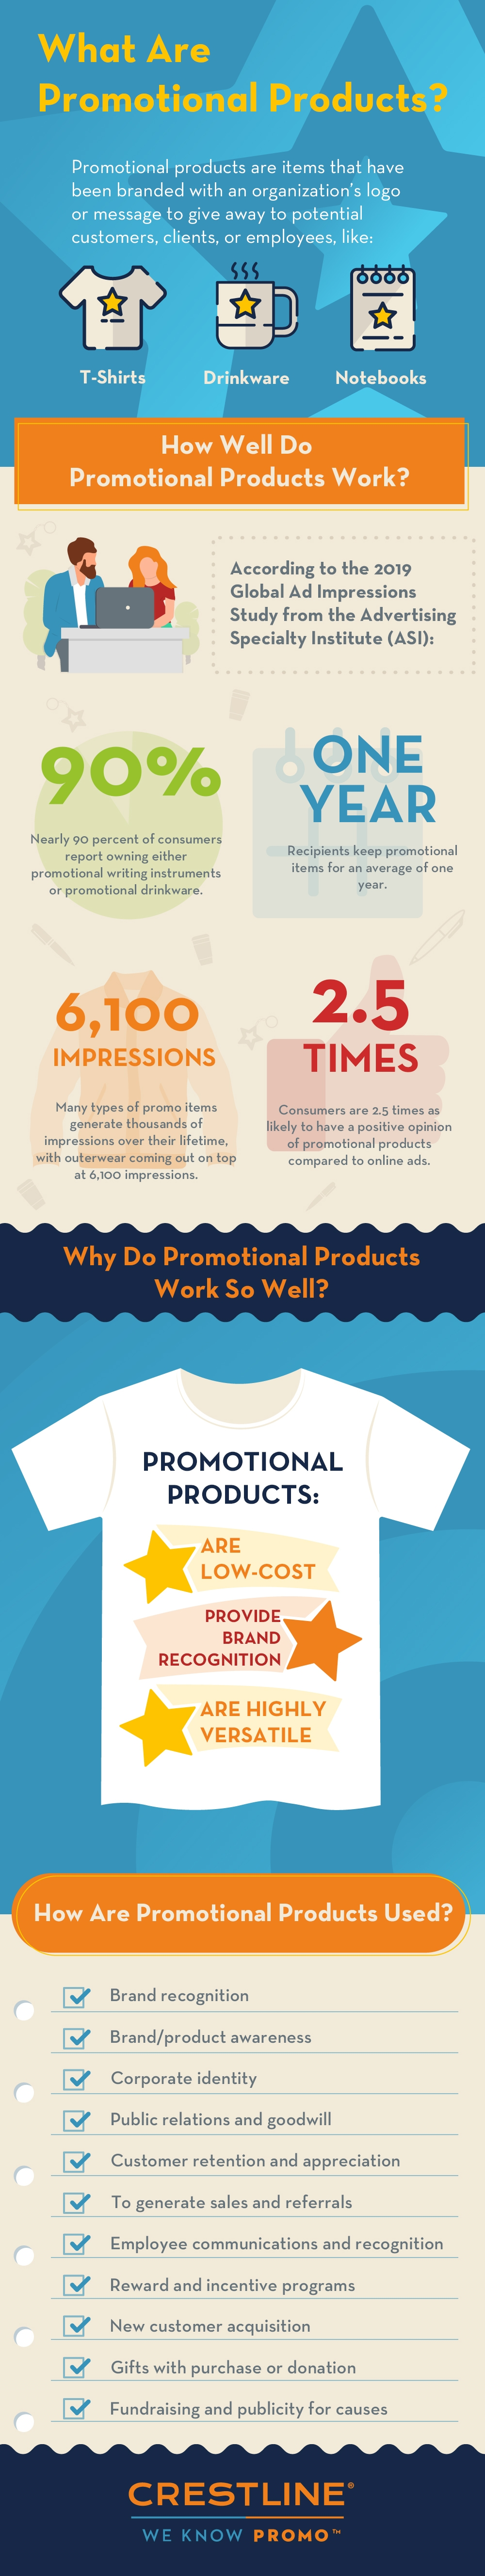 Promo Products Infographic